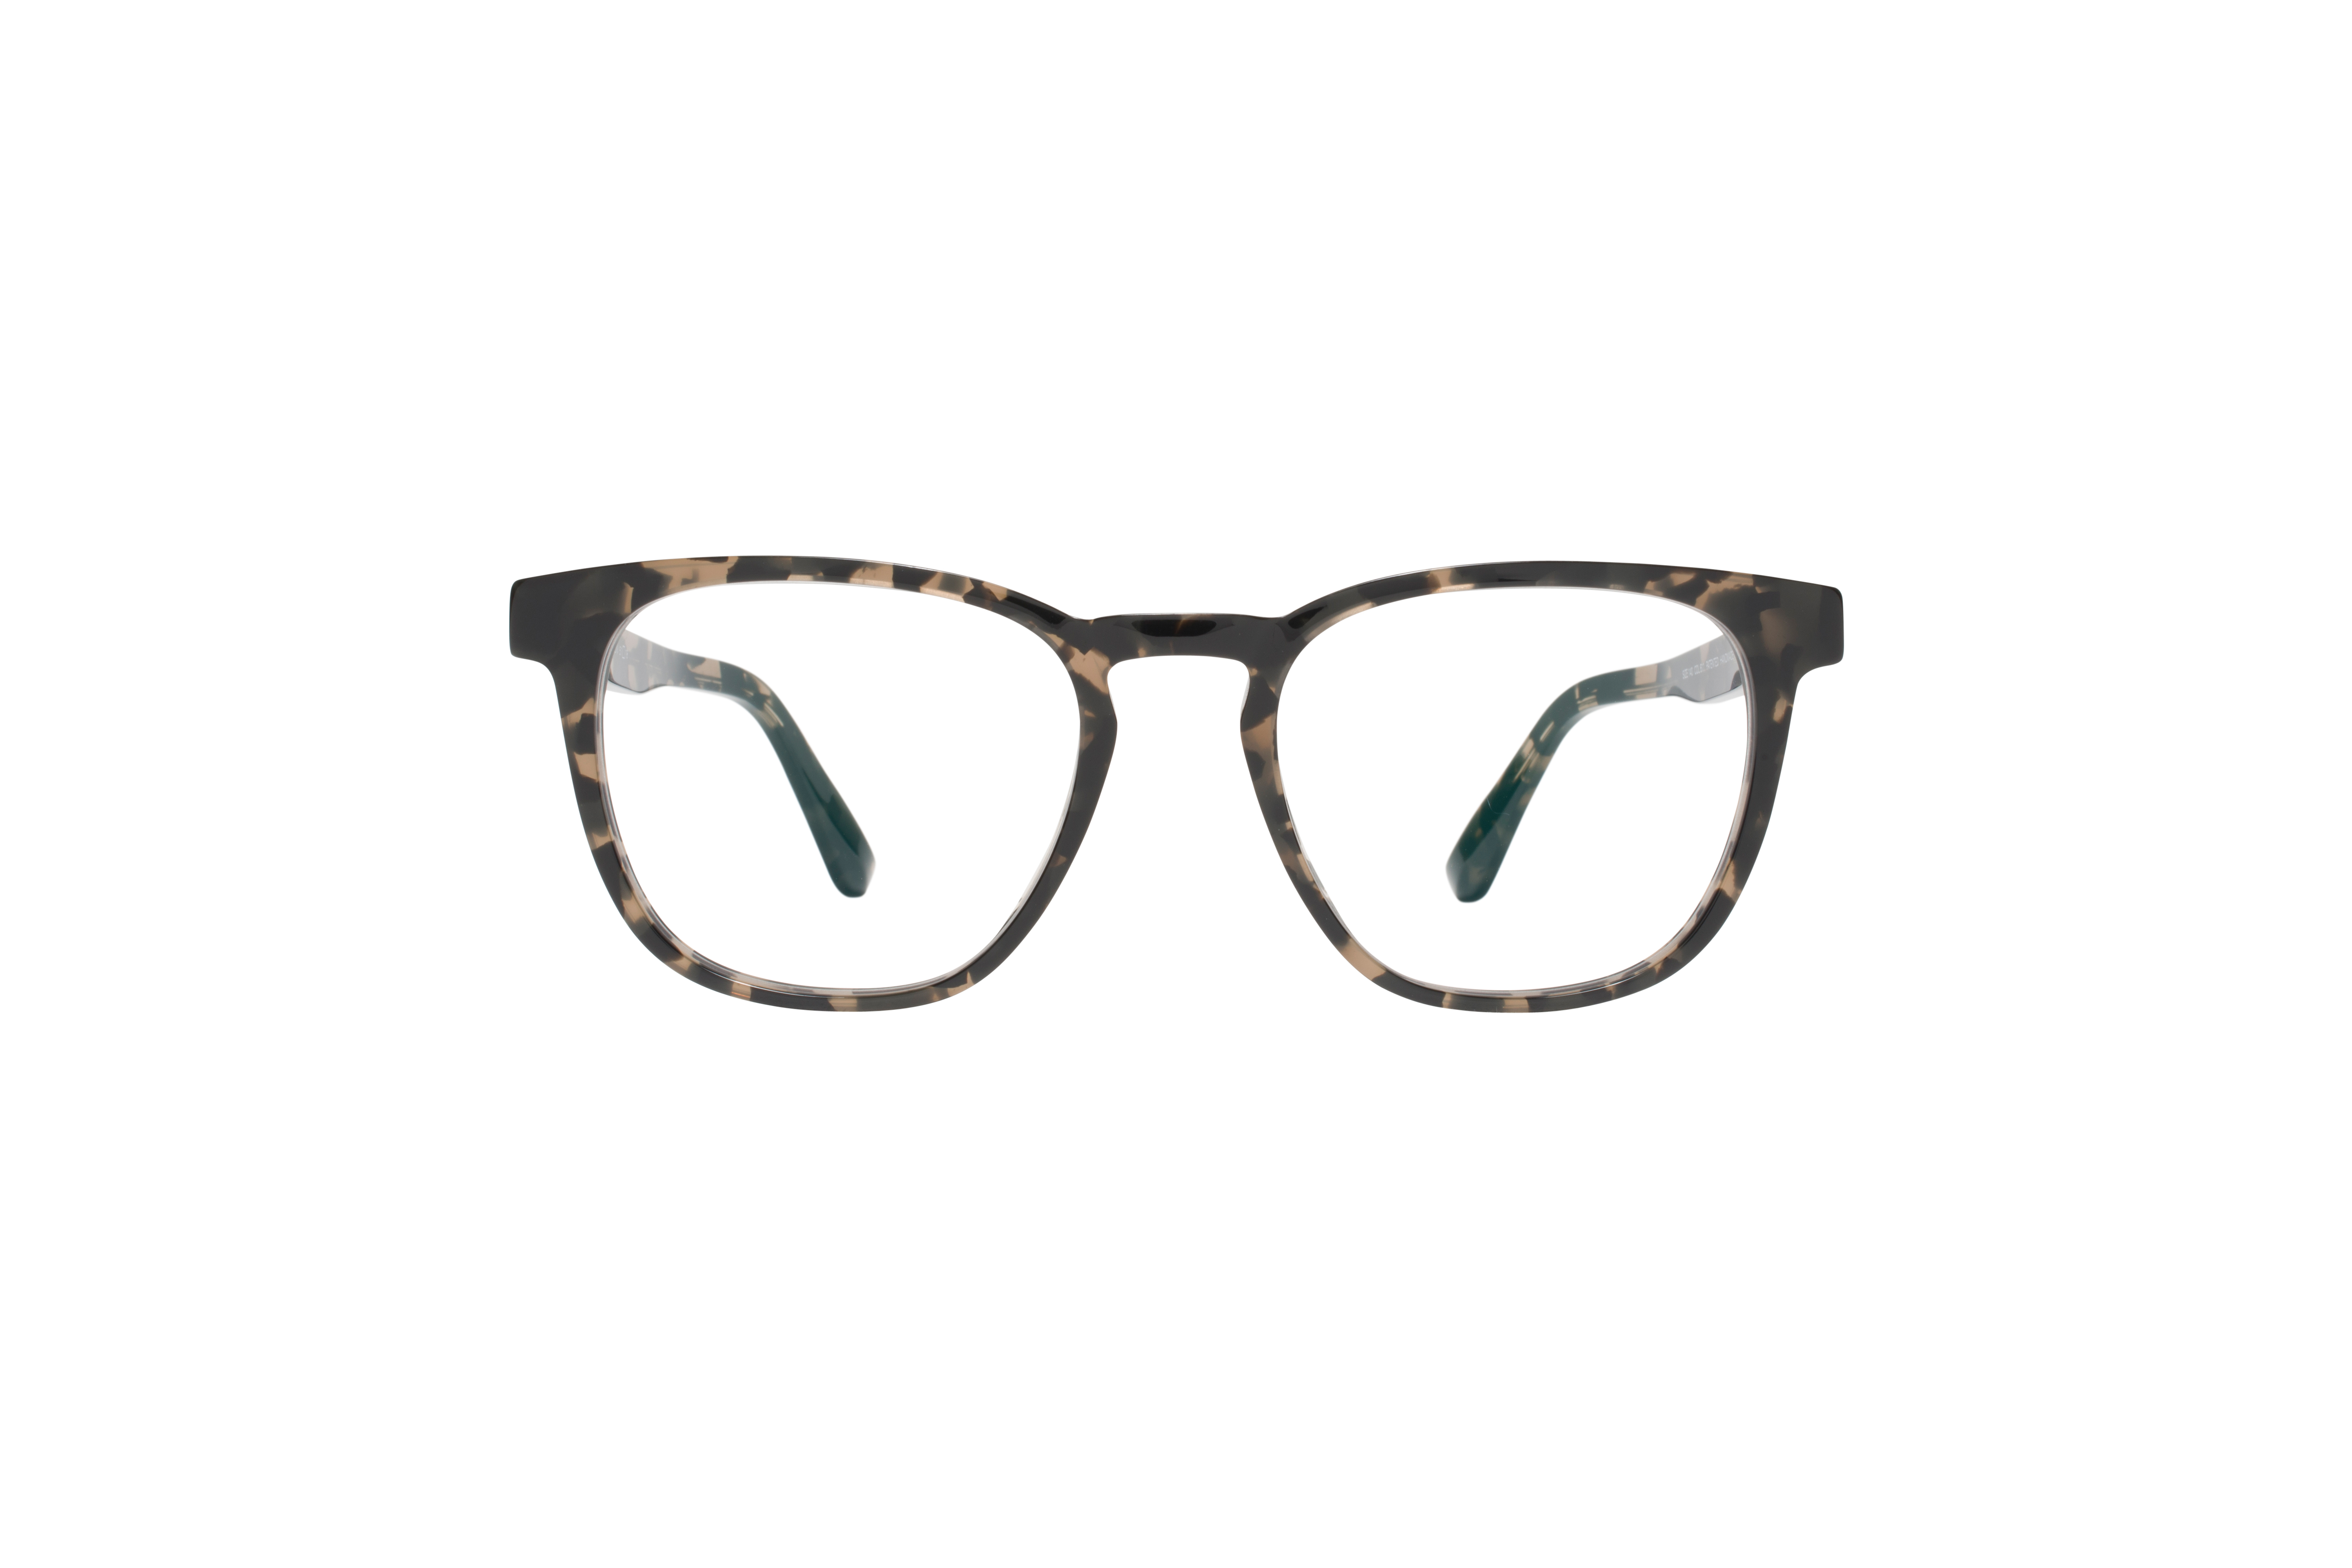 MYKITA No2 Rx Franklin Antigua Clear J5810c77d2fba0